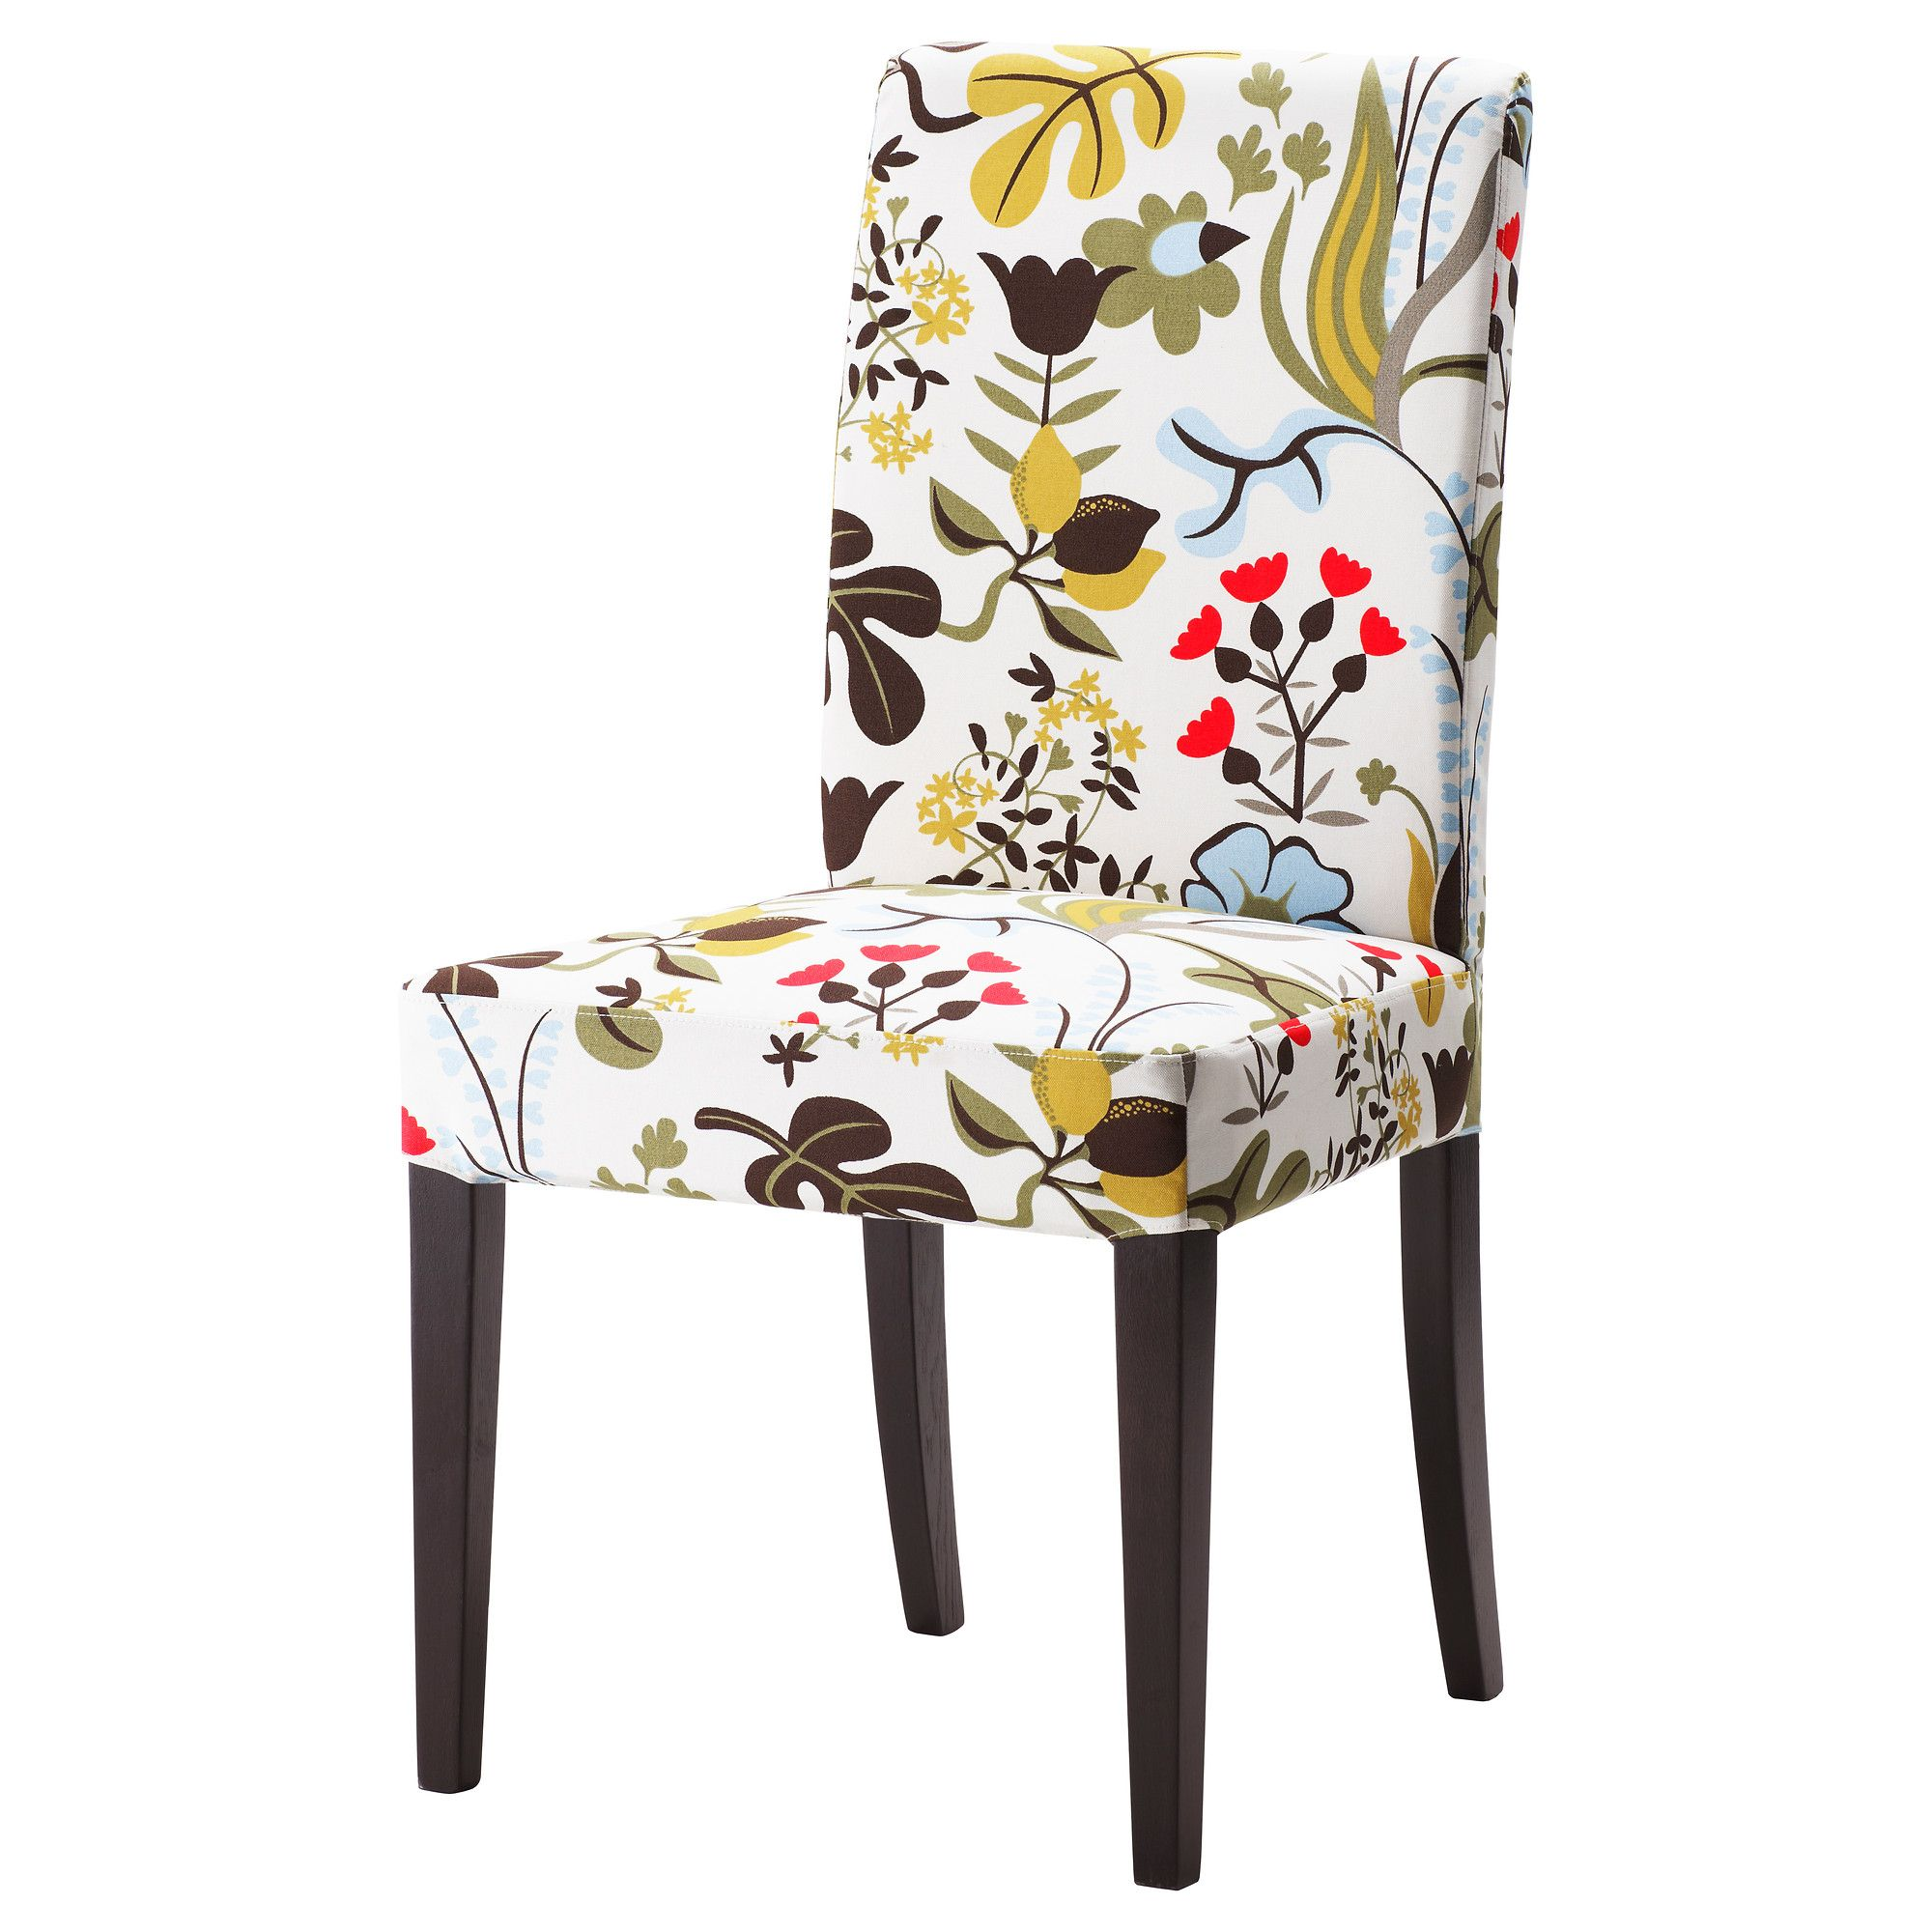 Australia Chair, Kitchen chairs ikea, Dining chairs